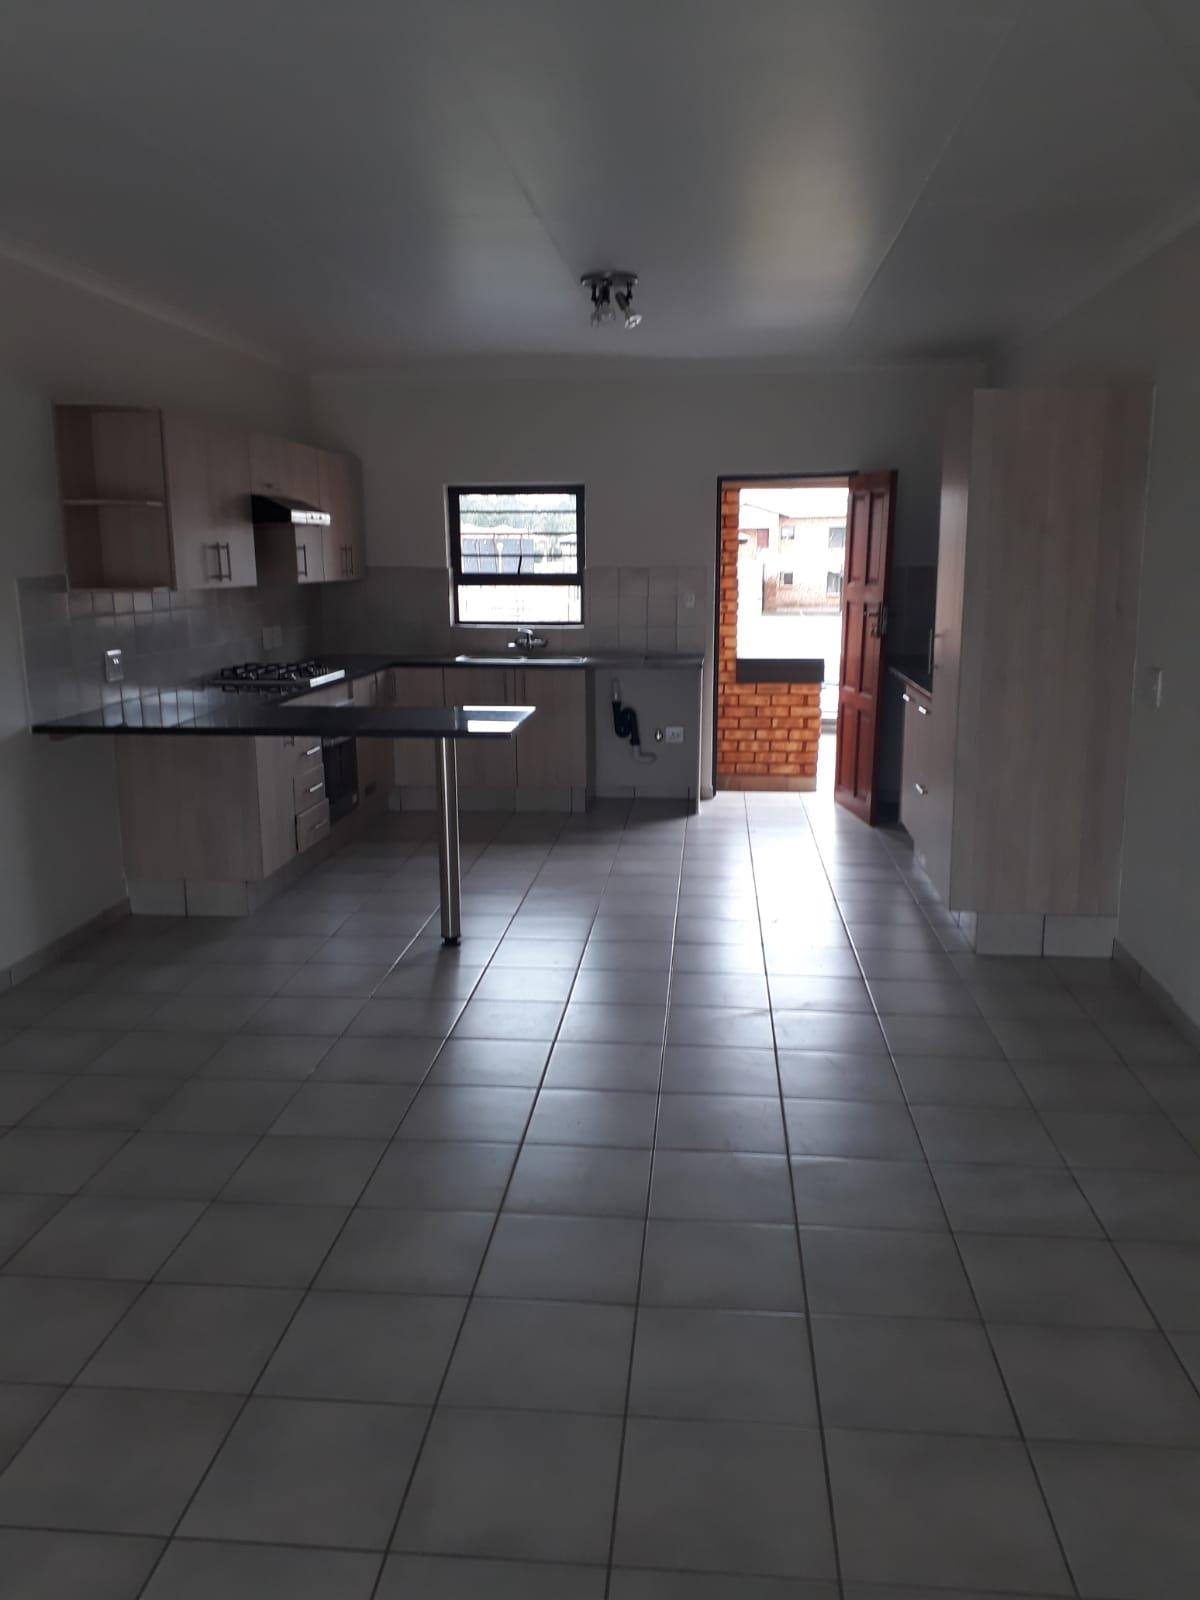 3 Bedroom Townhouse To Rent in New Market